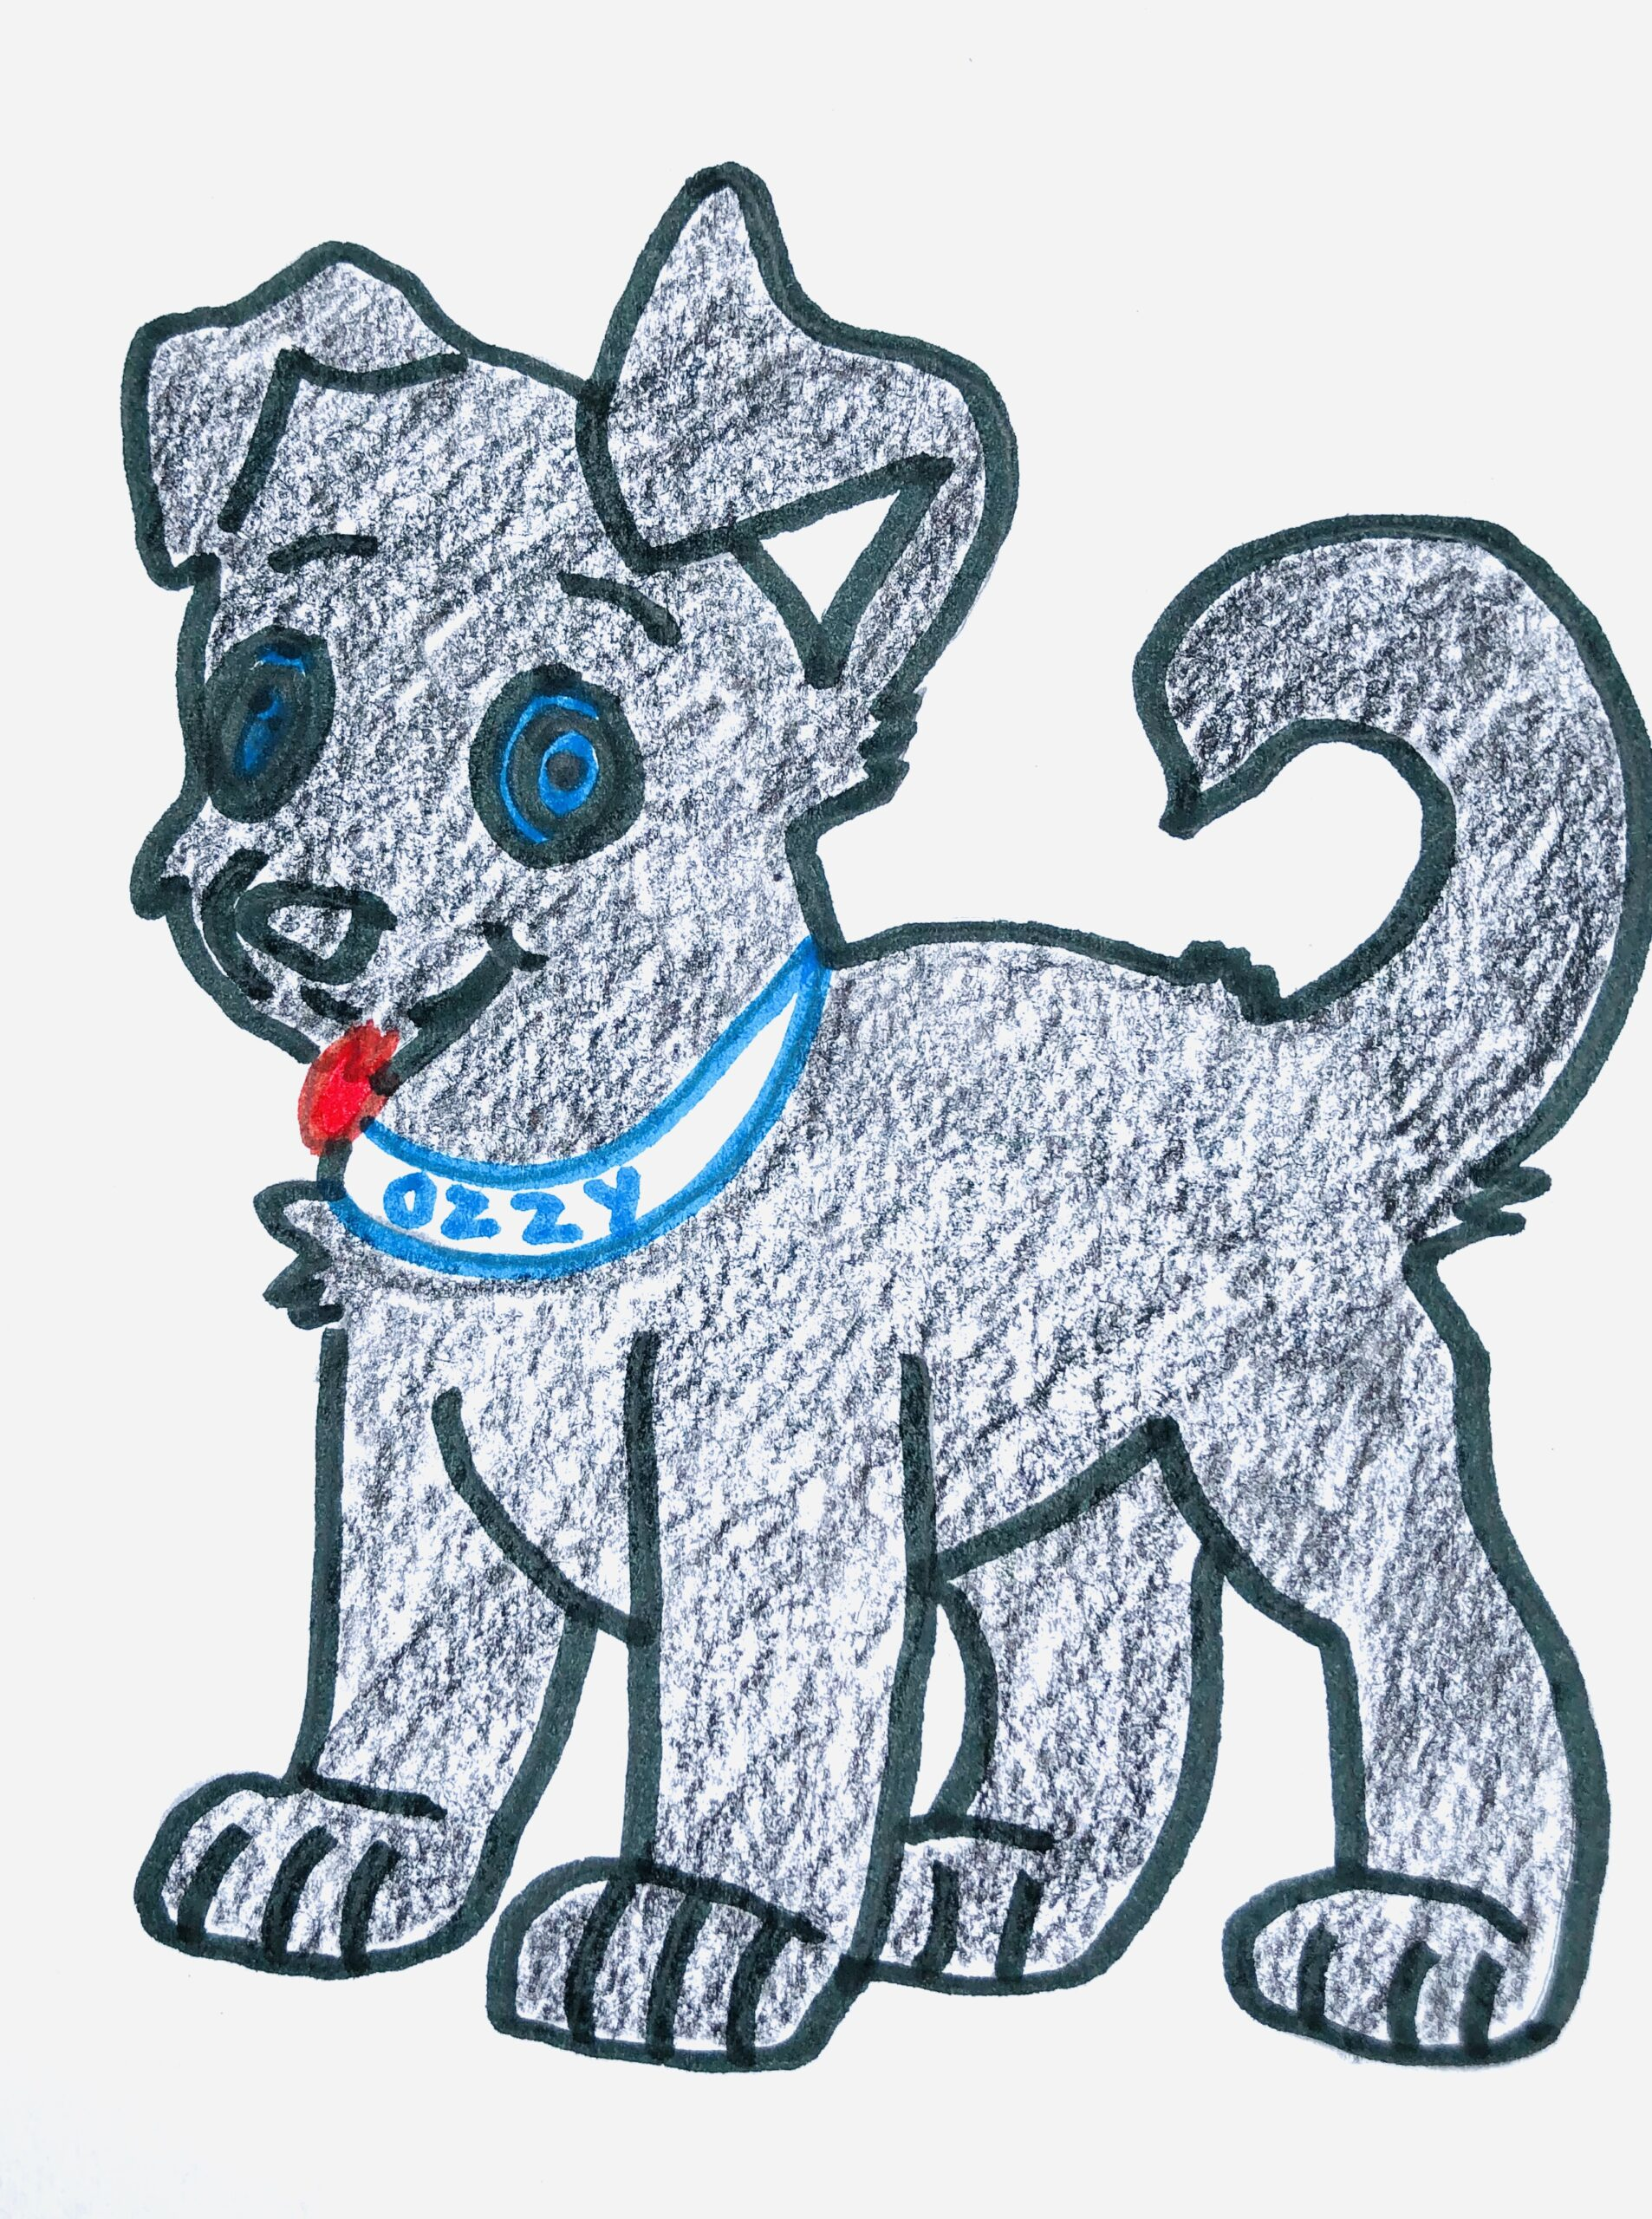 A black dog for the mystery story, The Case of the Missing Chips.